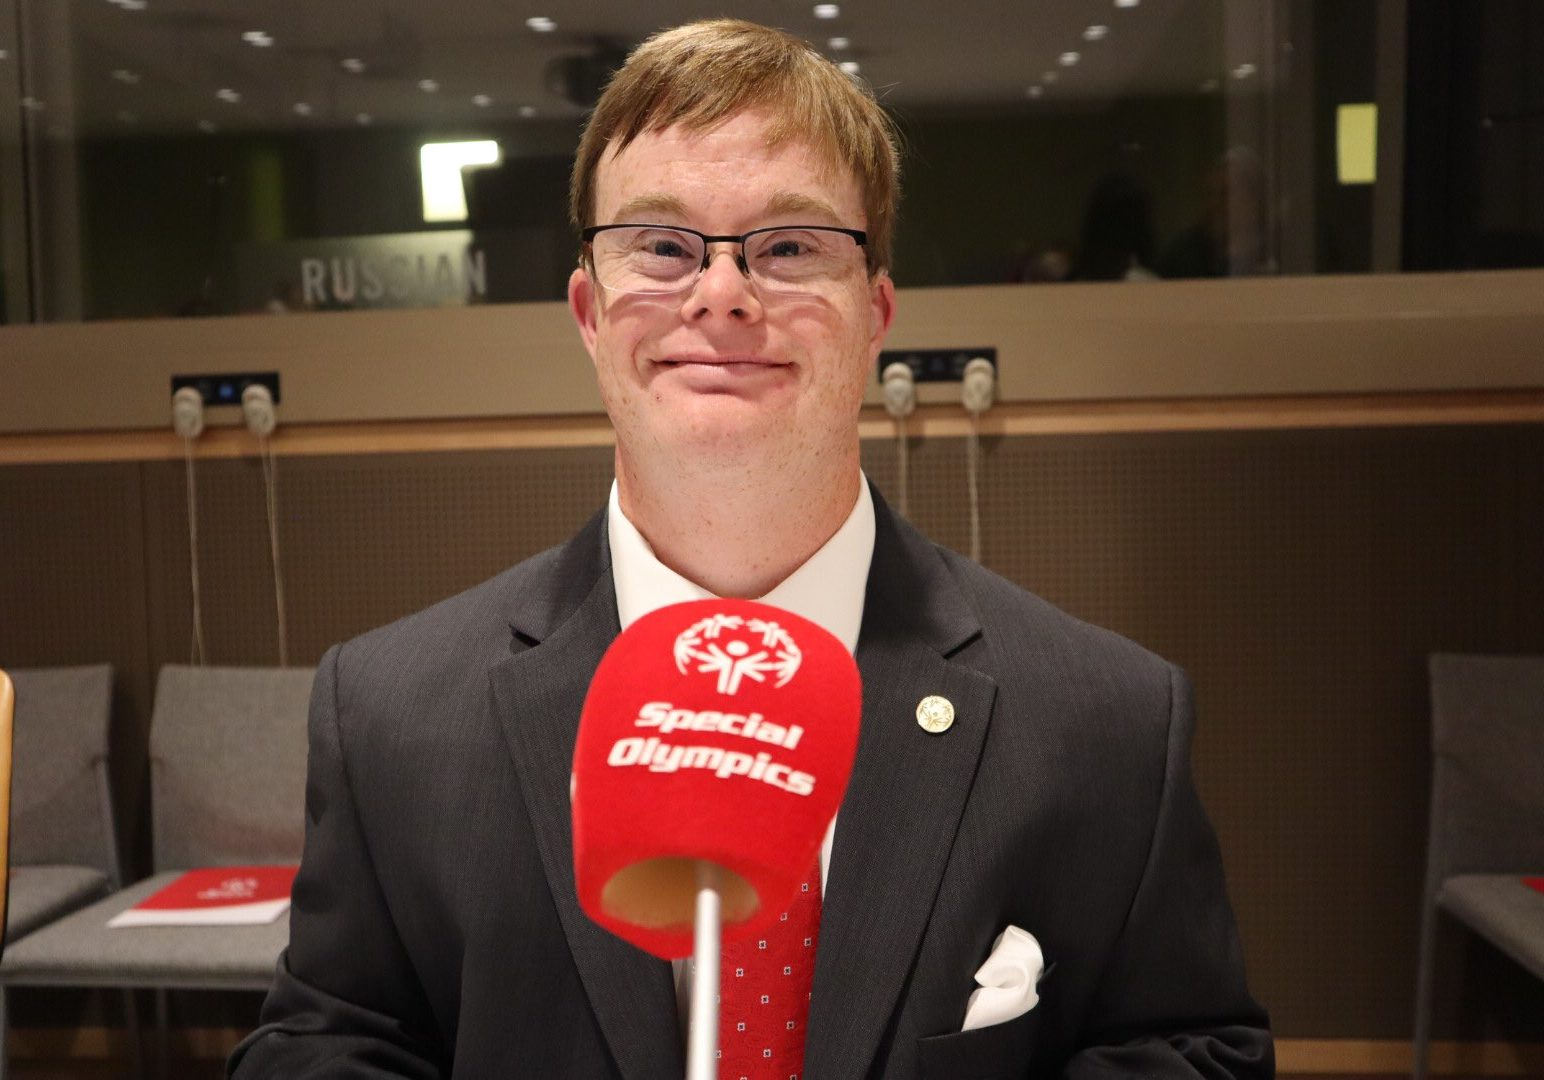 Athlete smiles at camera with a red microphone in front of them